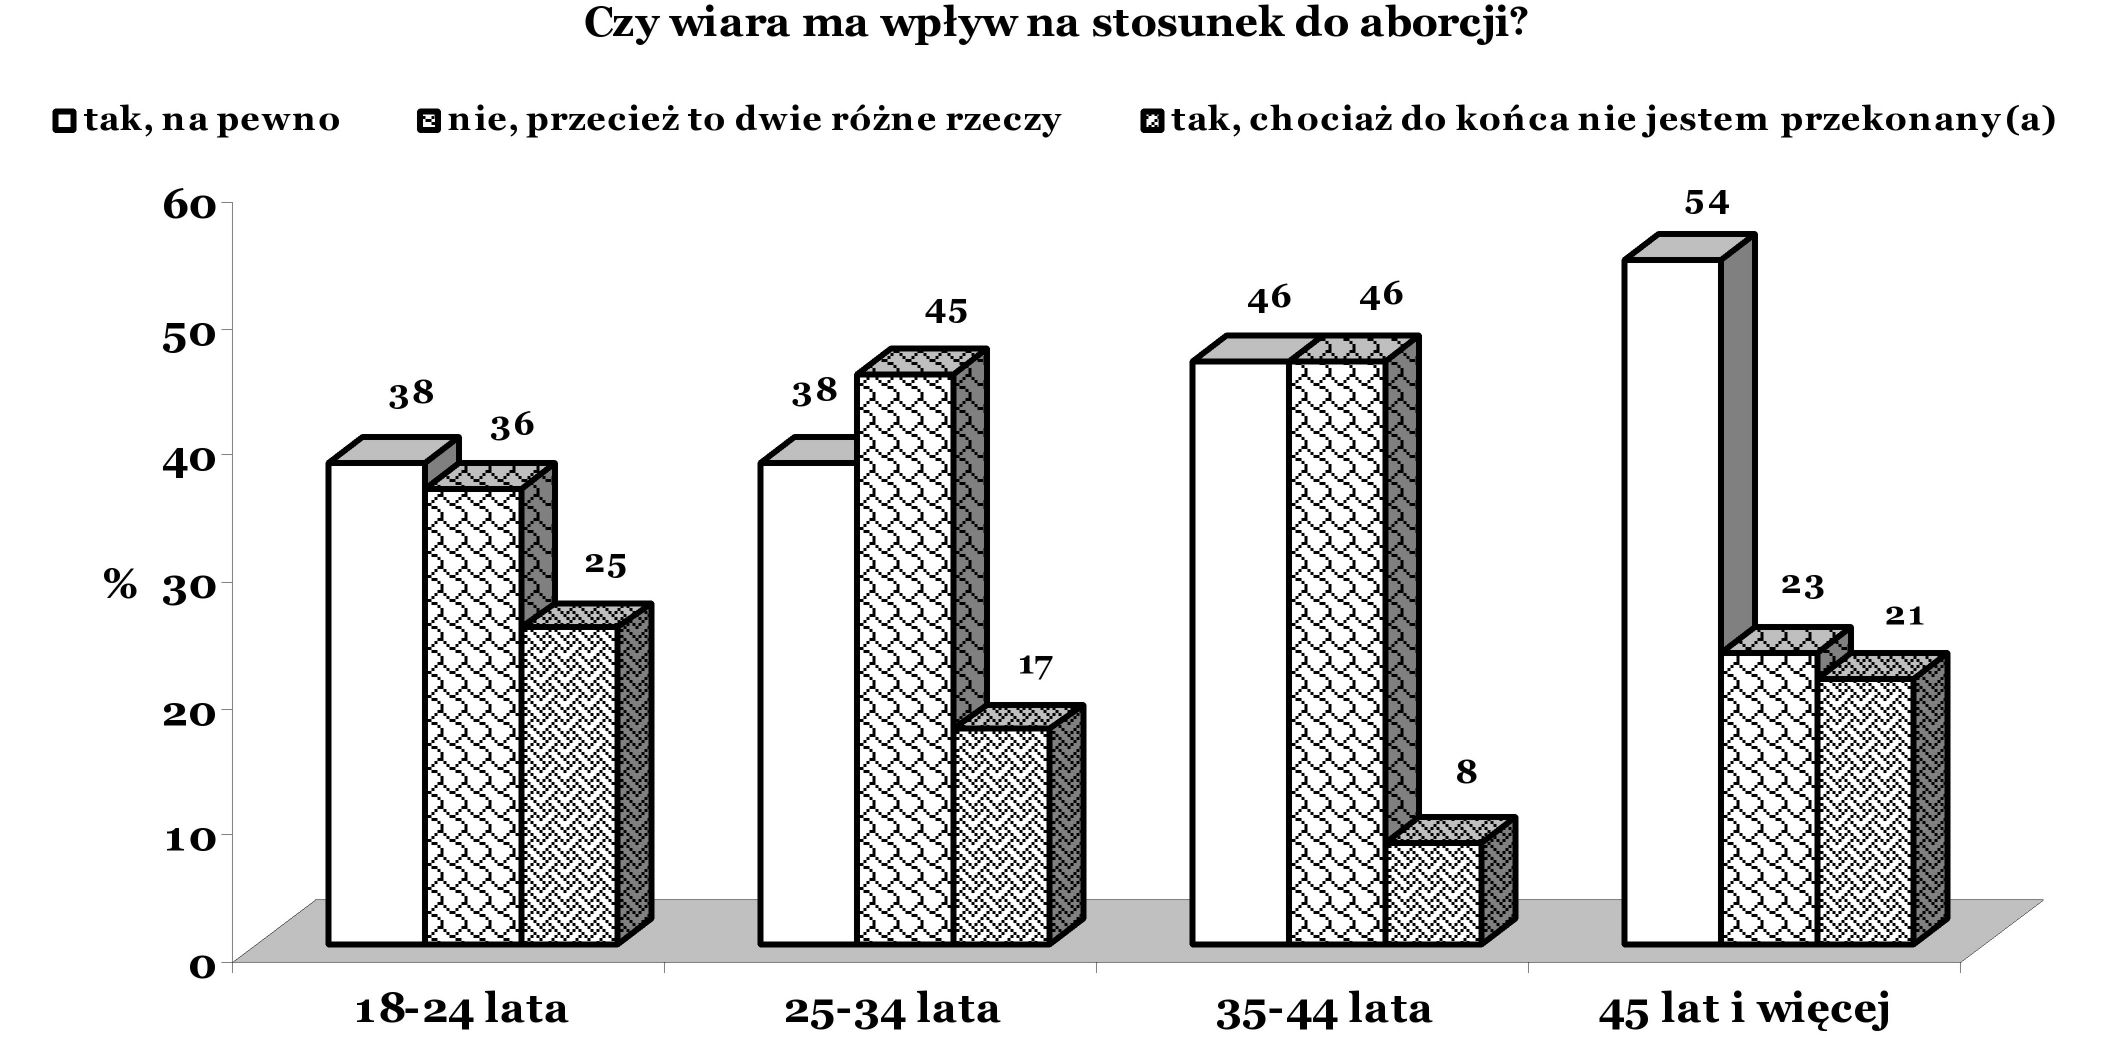 Opinions of respondents about whether religion has an influence on the opinion of abortion (n=311) Islam nie potępia zabiegu usunięcia ciąży jak większość wyznań chrześcijańskich.